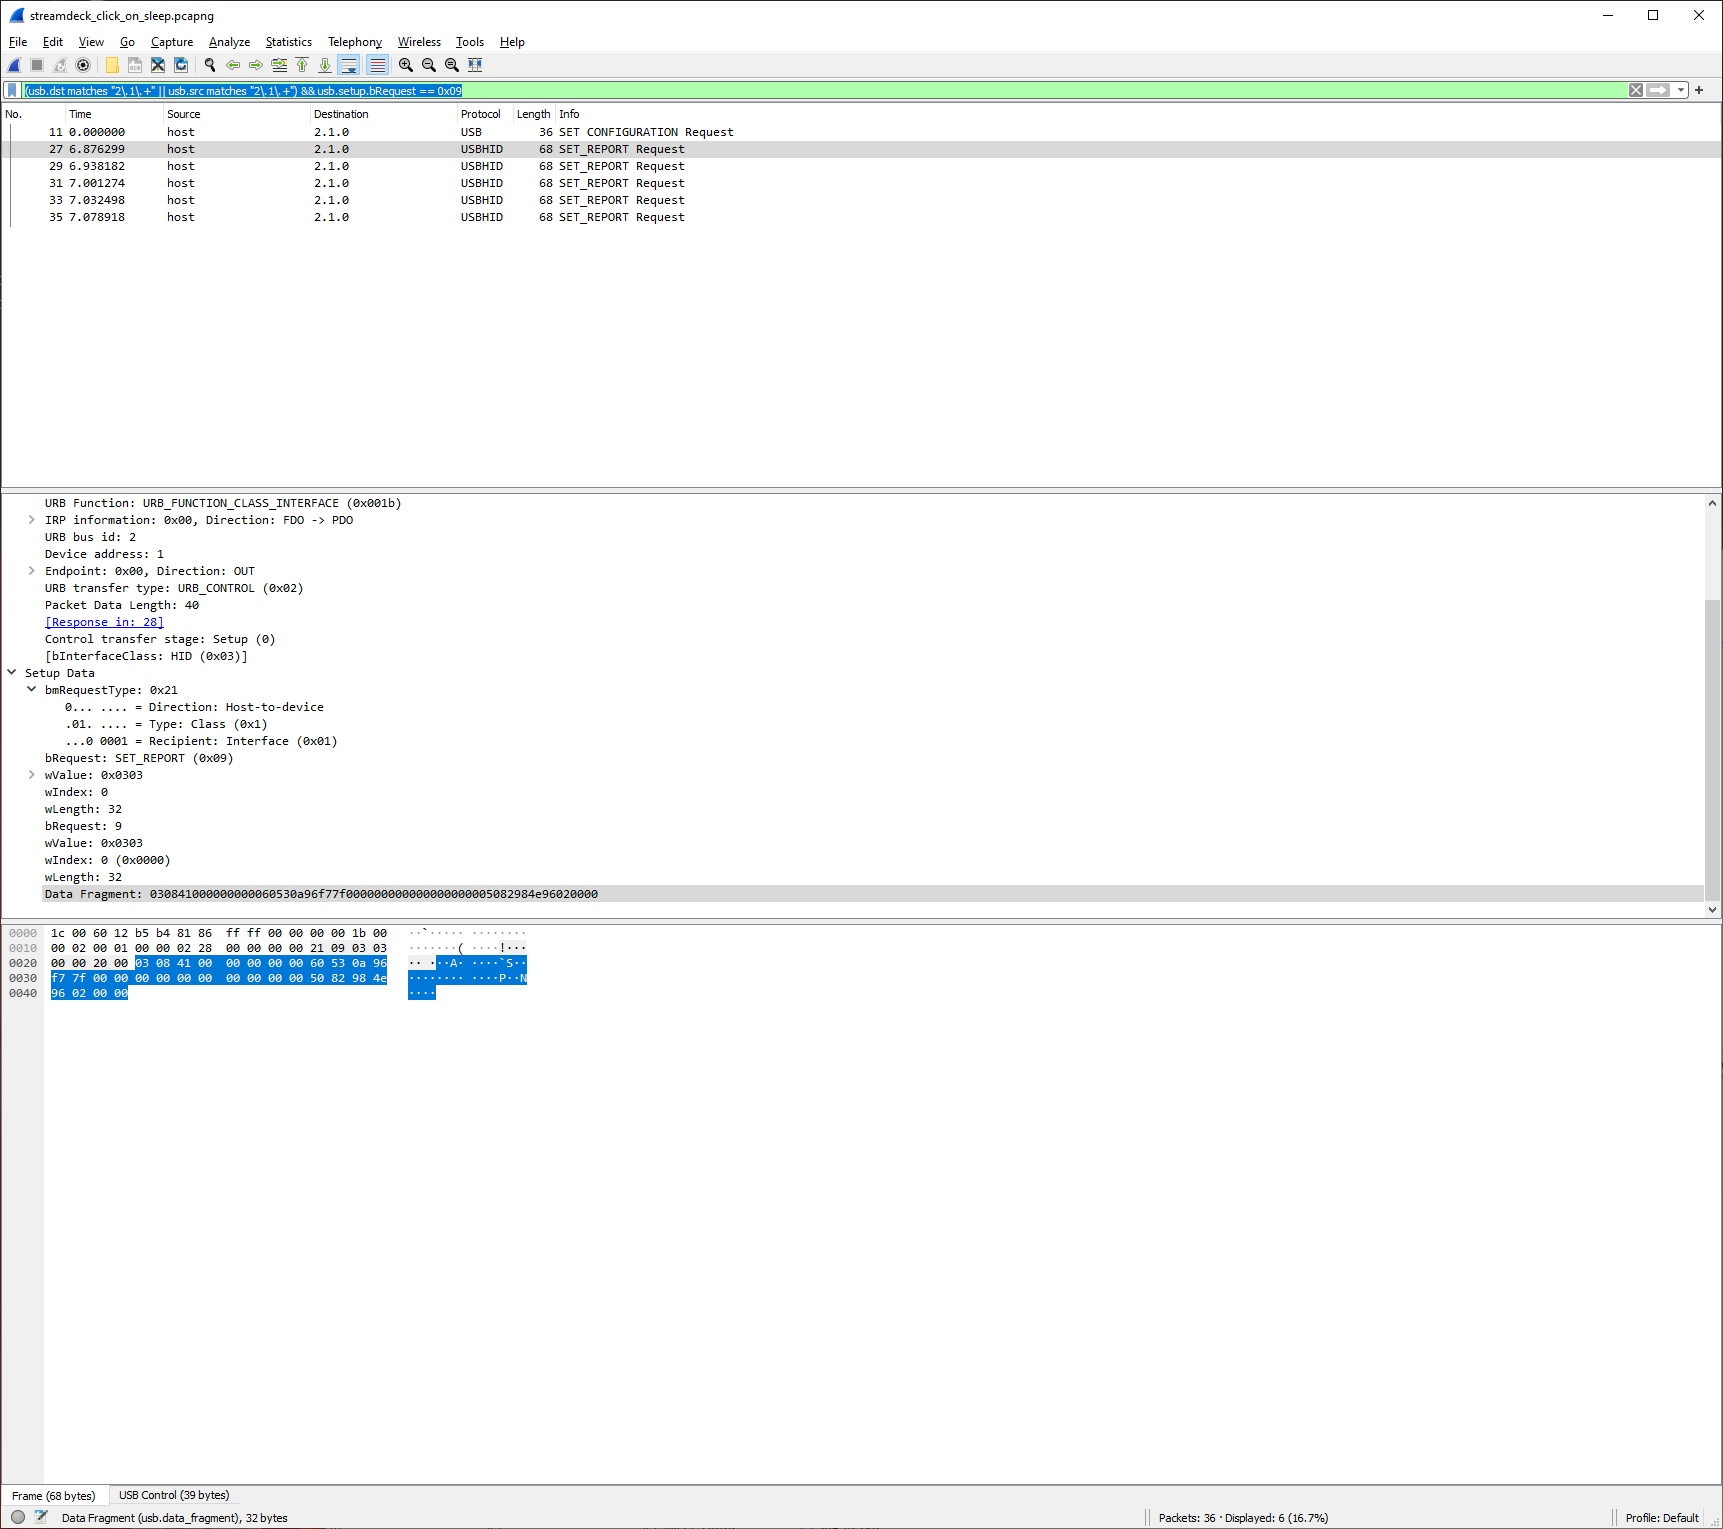 SET_REPORT in Wireshark while inspecting USB traffic